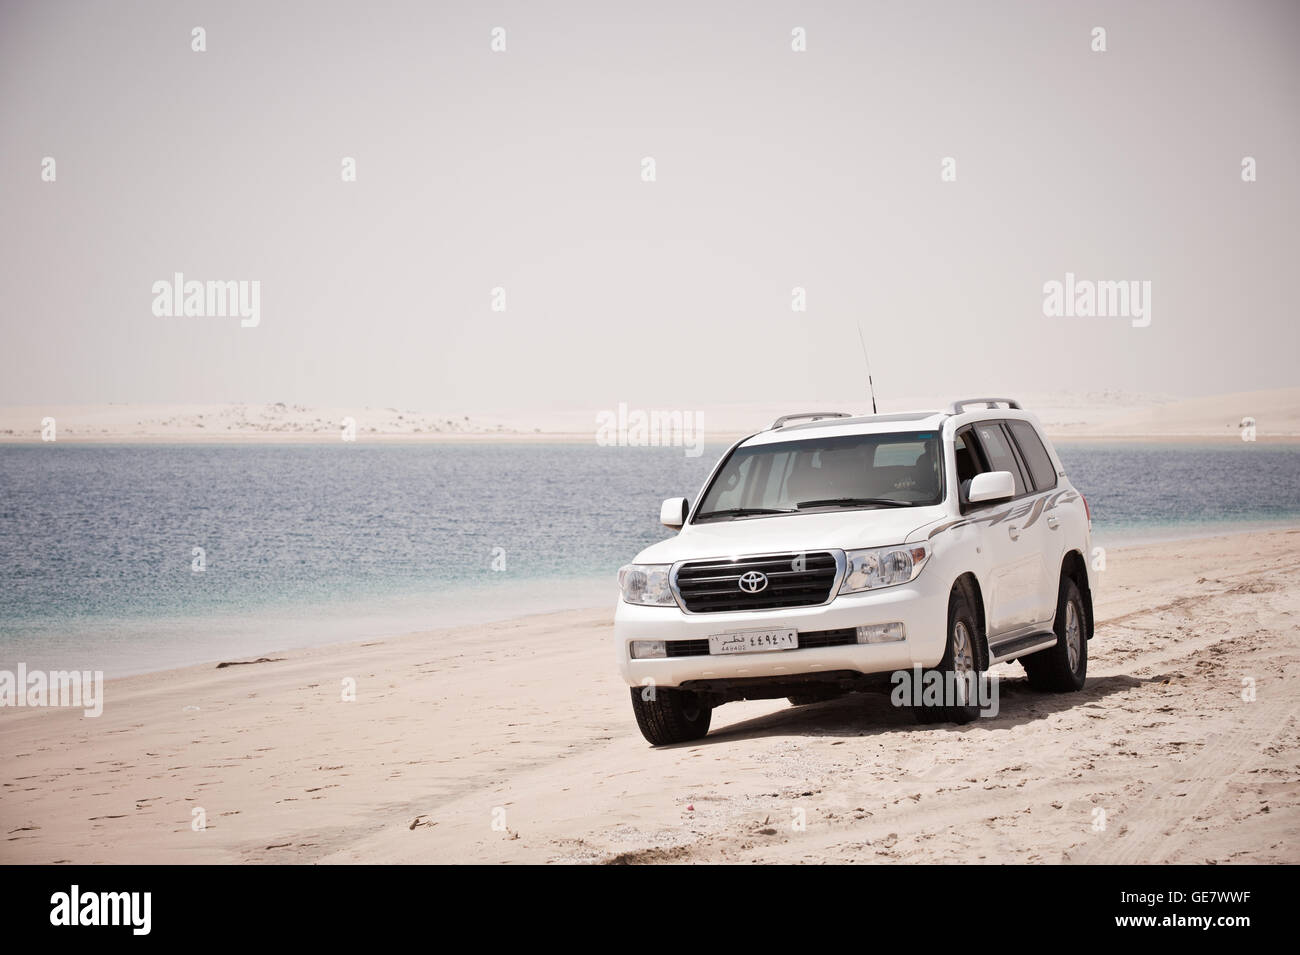 A car parked on the banks of the Inland Sea, which is an inlet of the Arabian Gulf forming a tidal lake. The Inland - Stock Image